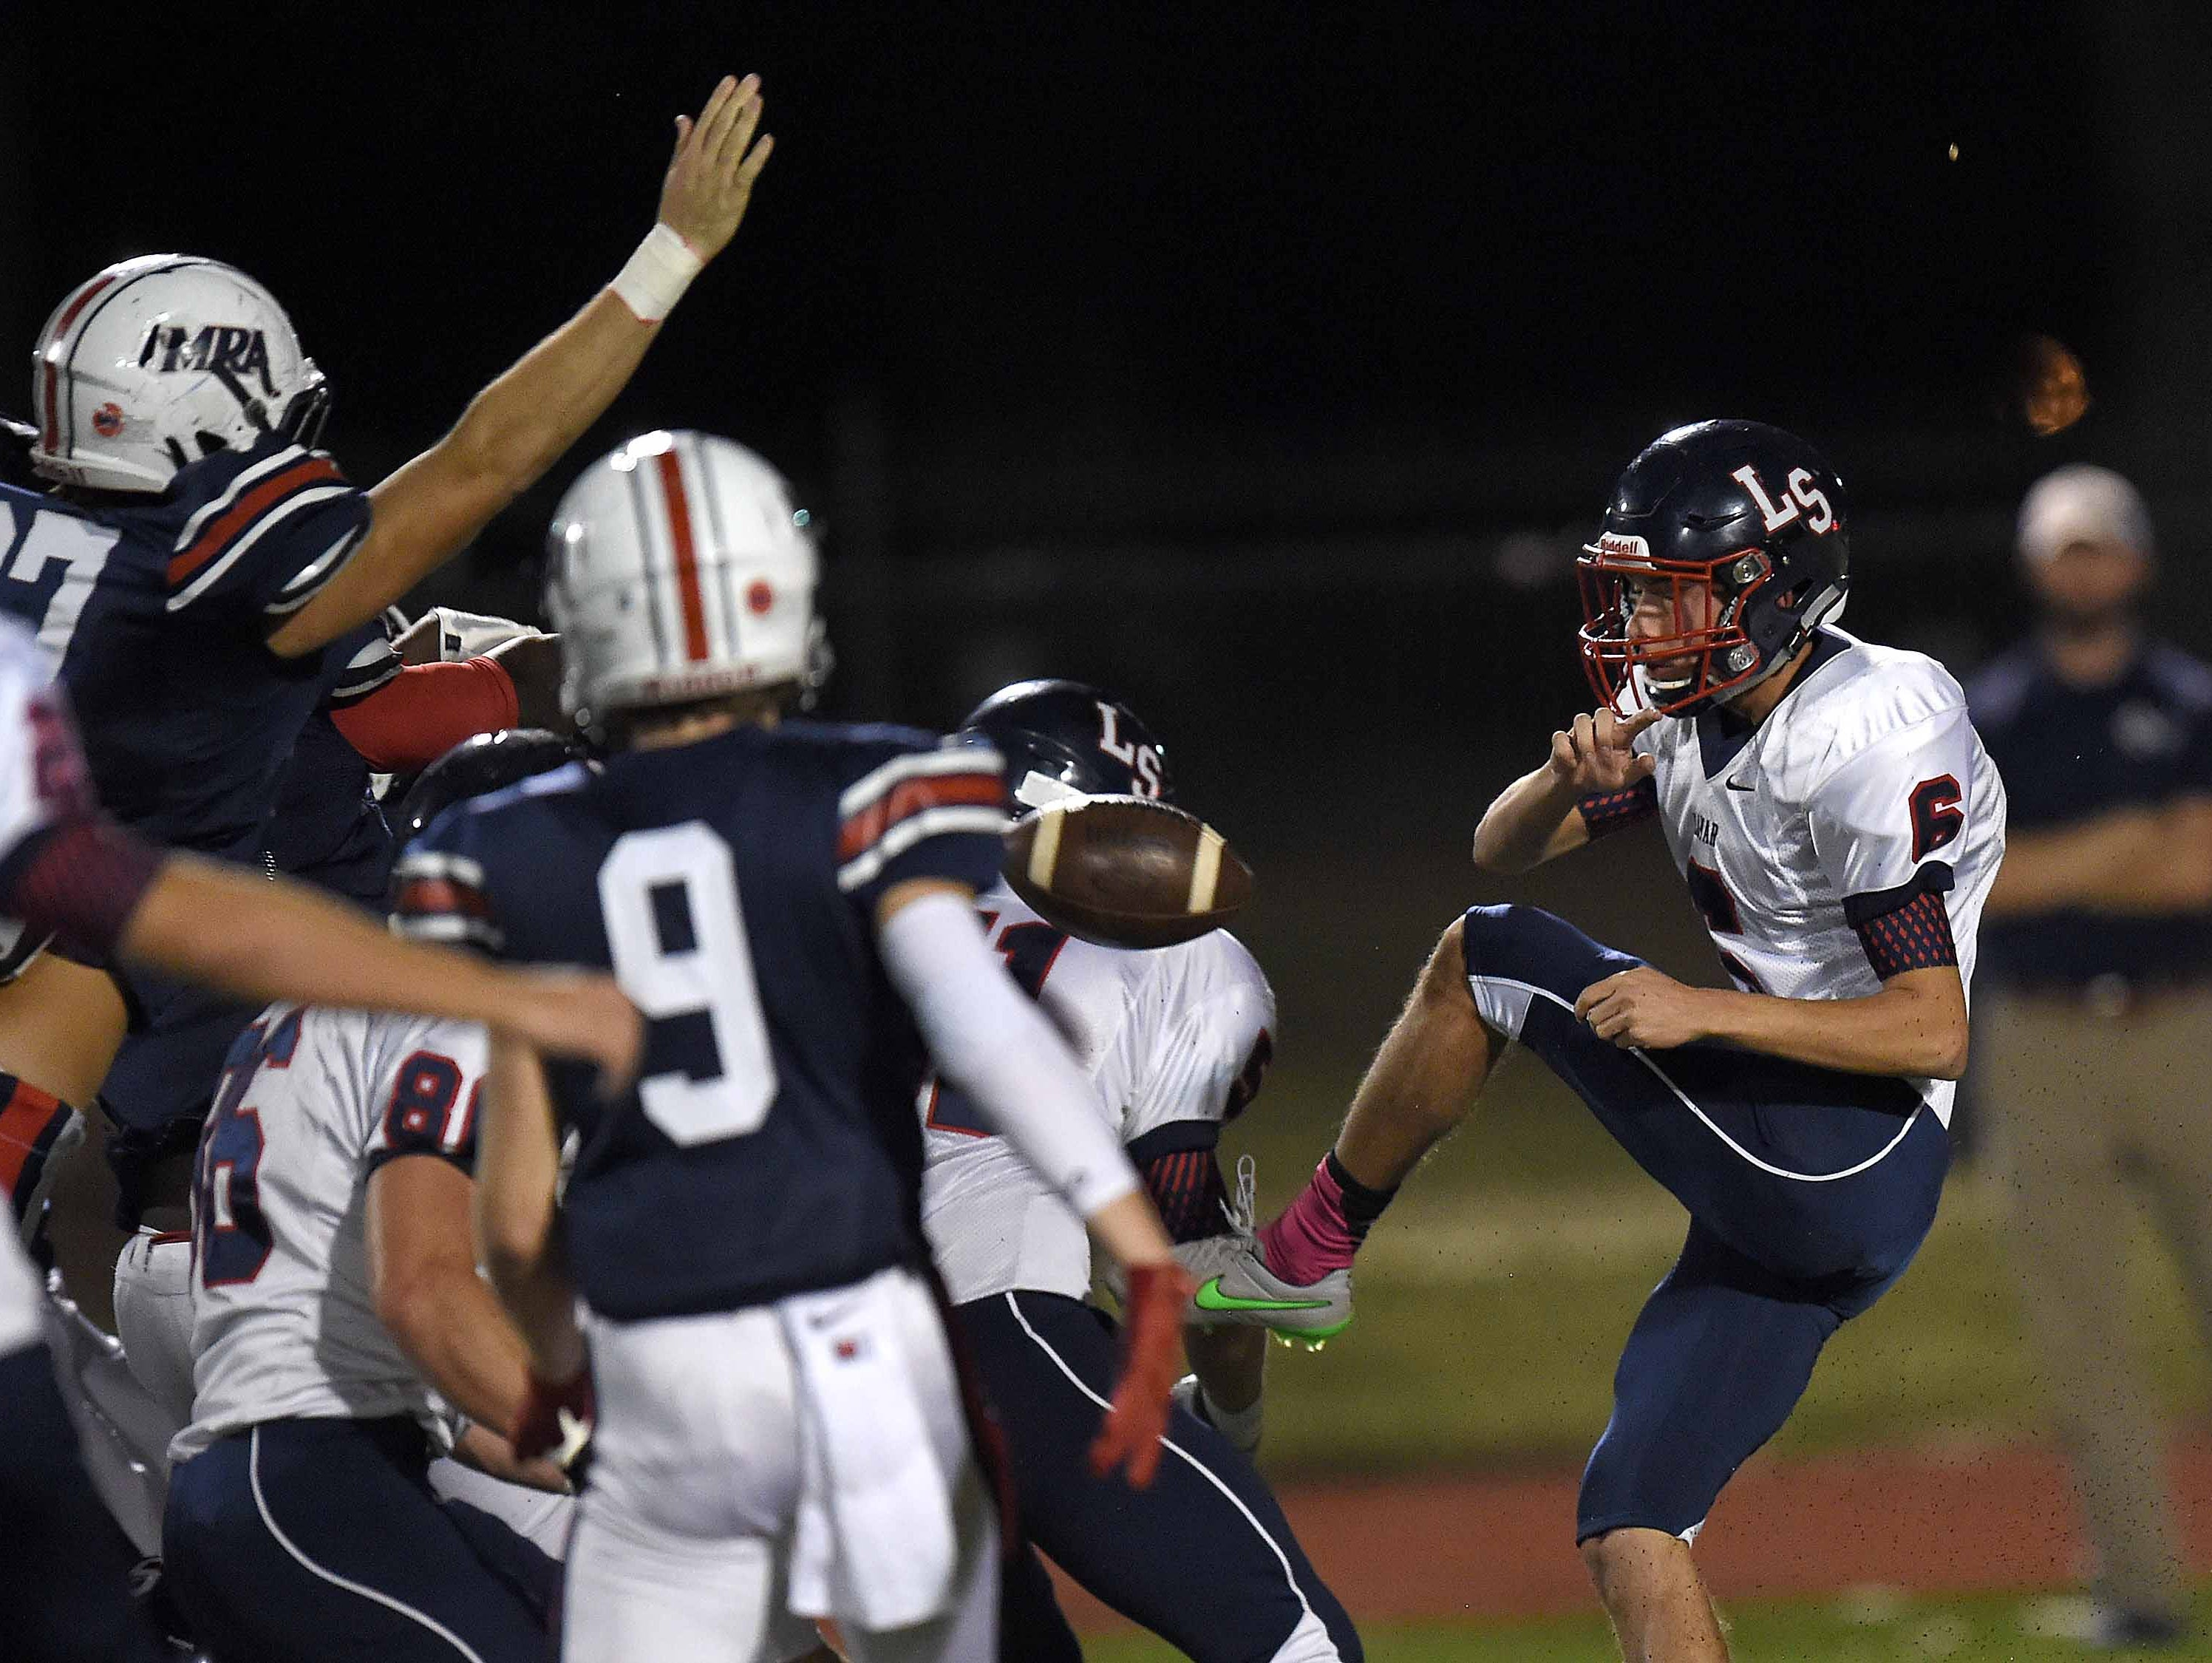 MRA's Lilewis Davis (far left, hand raised) blocks the punt by Lamar's Zack Engell (6) on Friday, October 30, 2015, at Madison-Ridgeland Academy in Madison, Miss. The recovered punt led to MRA's first touchdown.